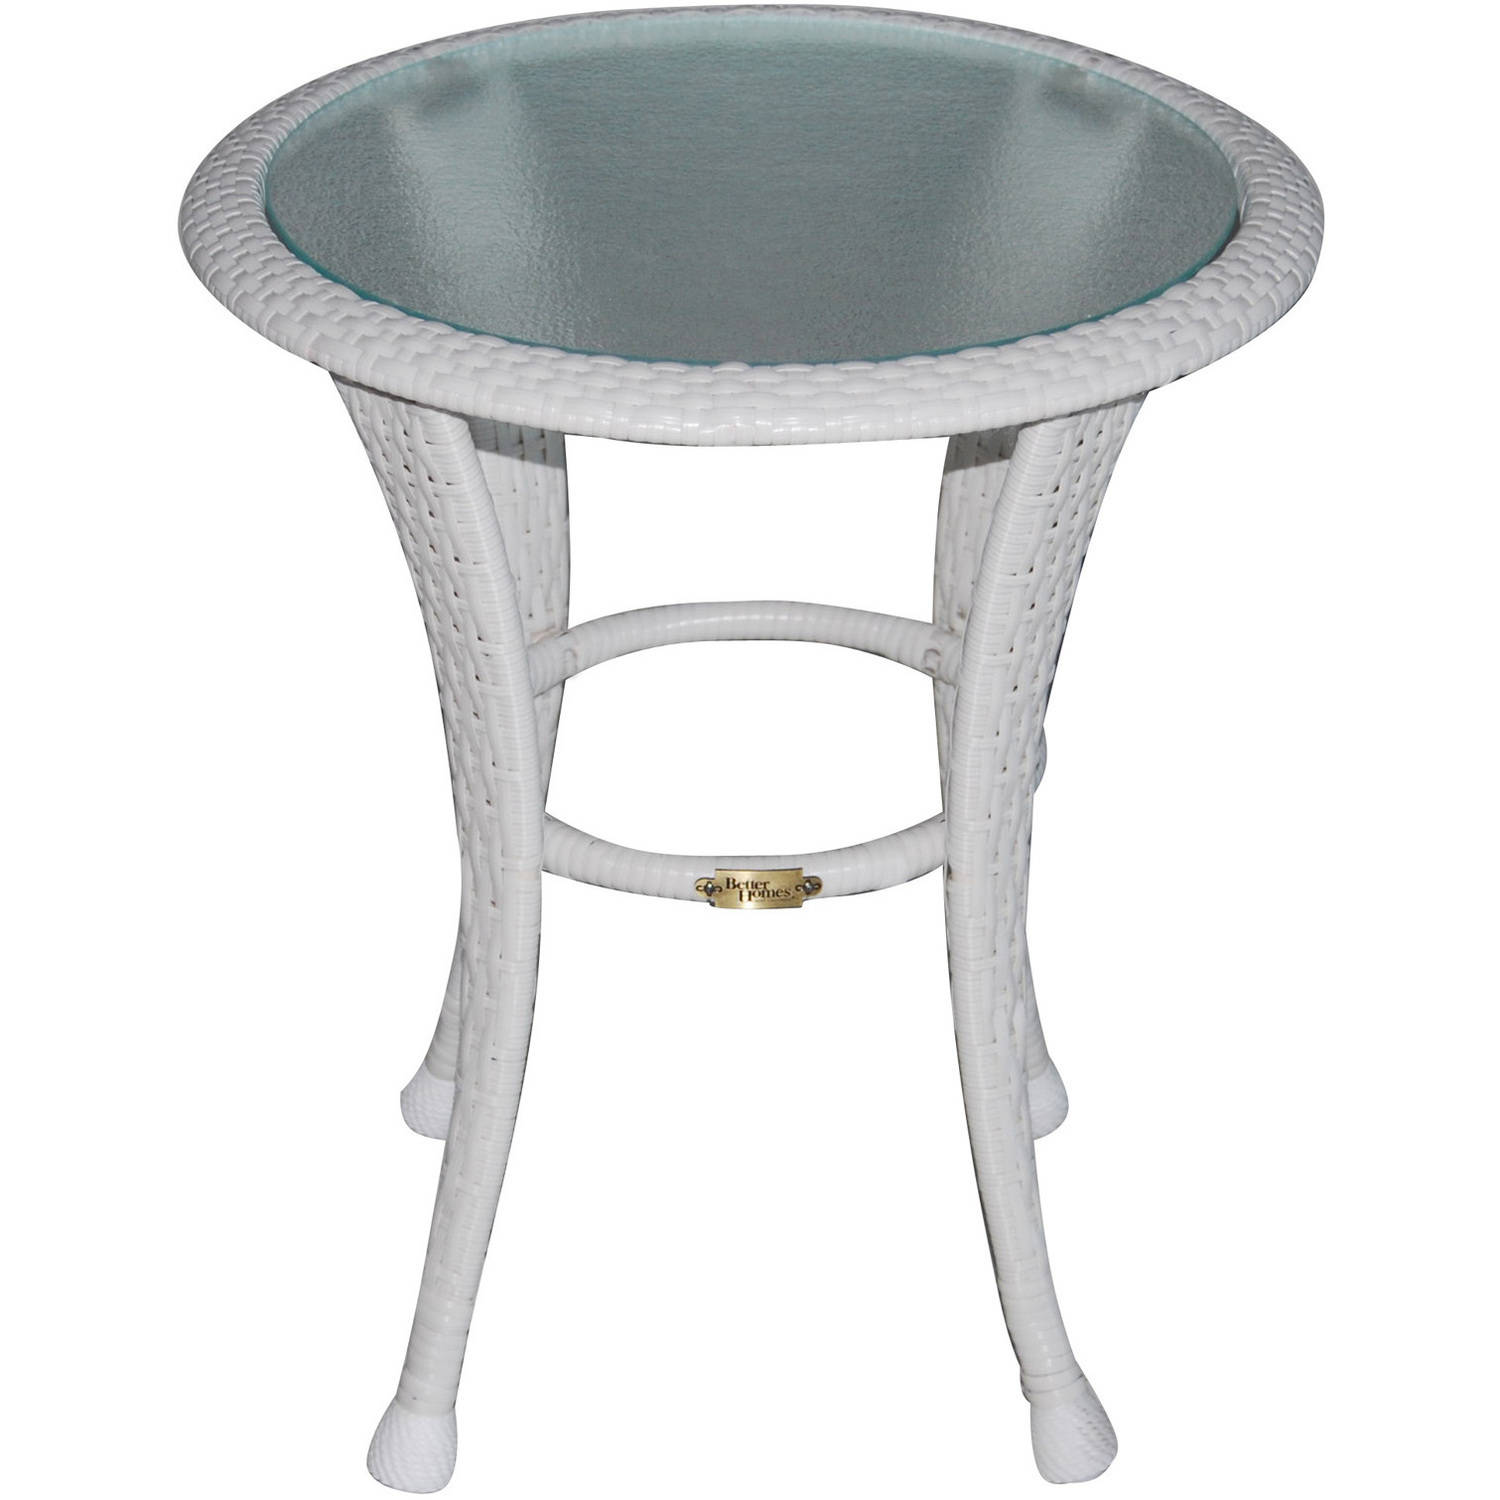 better homes and gardens colebrook outdoor glass top side table white patio accent ashley furniture modern square end pier imports tables kroger circular cover round brass small